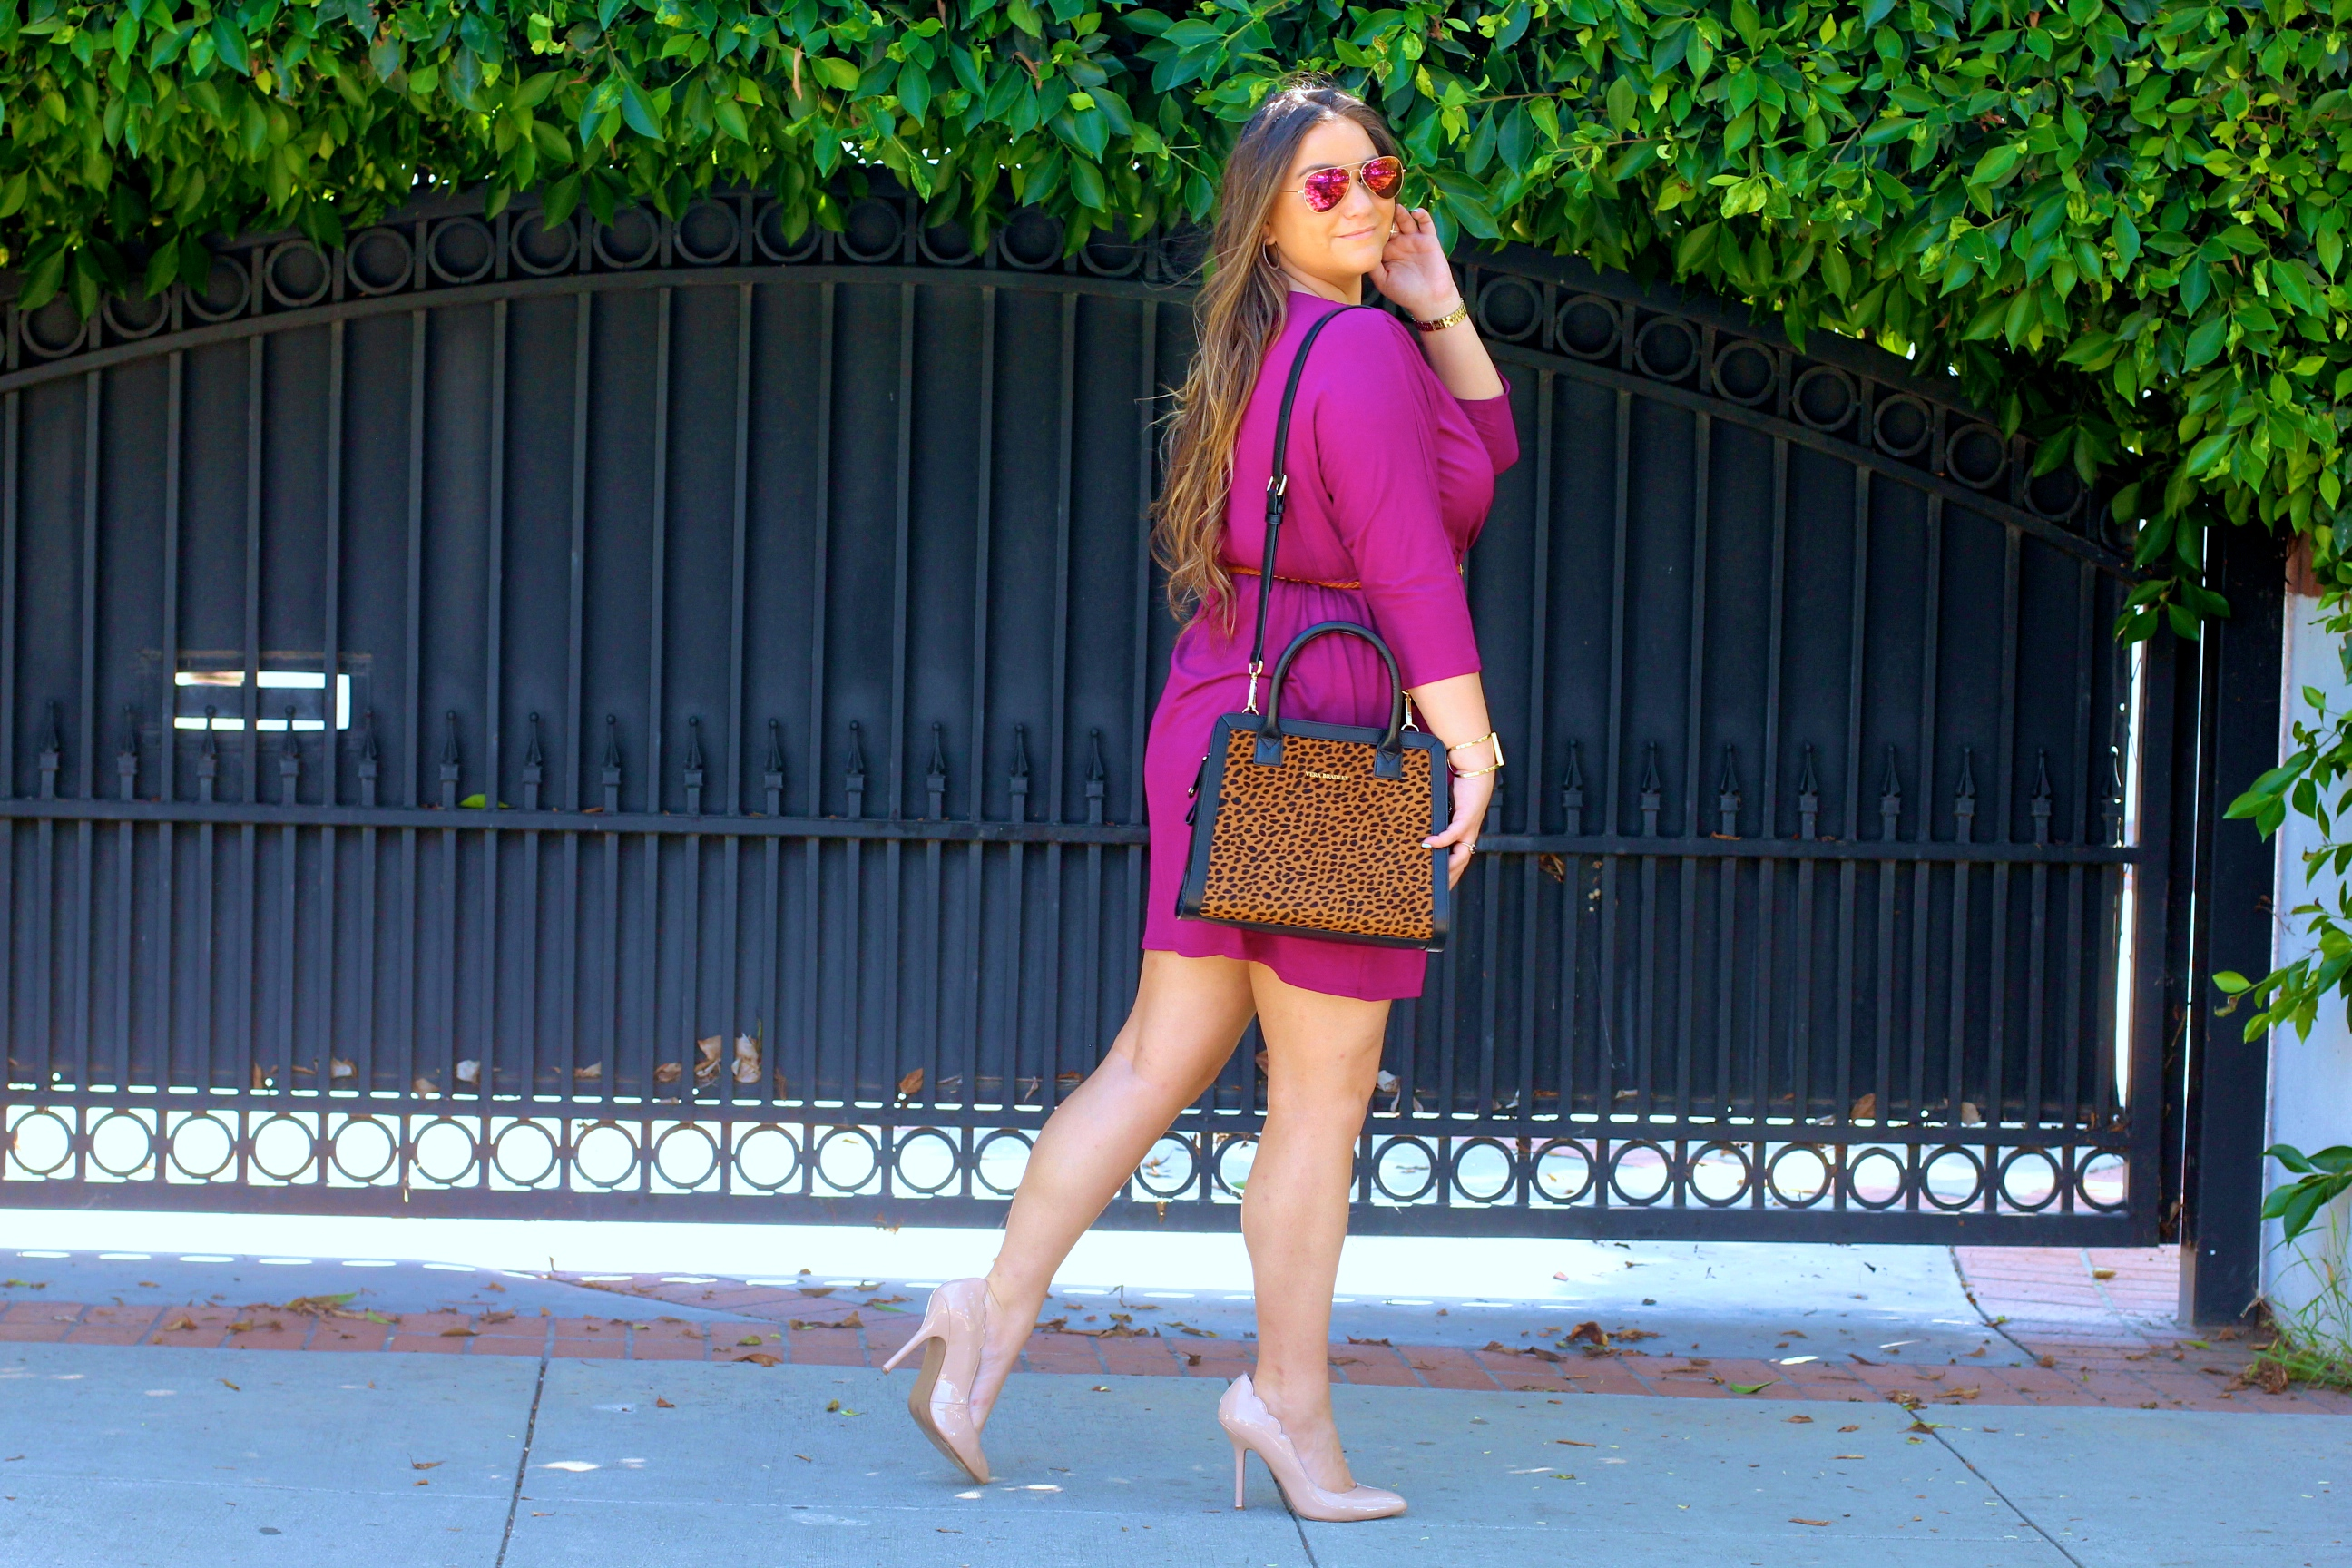 missyonmadison, melissa tierney, fashion blog, fashion blogger, style blog, style blogger, shoot the moon la, violet wrap dress, plum wrap dress, vera bradley, vera bradley leopard satchel, leopard satchel, nude pumps, nude pointed toe pumps, dsw, mirrored aviators, red aviators, baublebar monogram necklace, wrap dress, long sleeve wrap dress, holiday style, what to wear for the holidays, how to dress for work, la blogger, violet wrap dress,